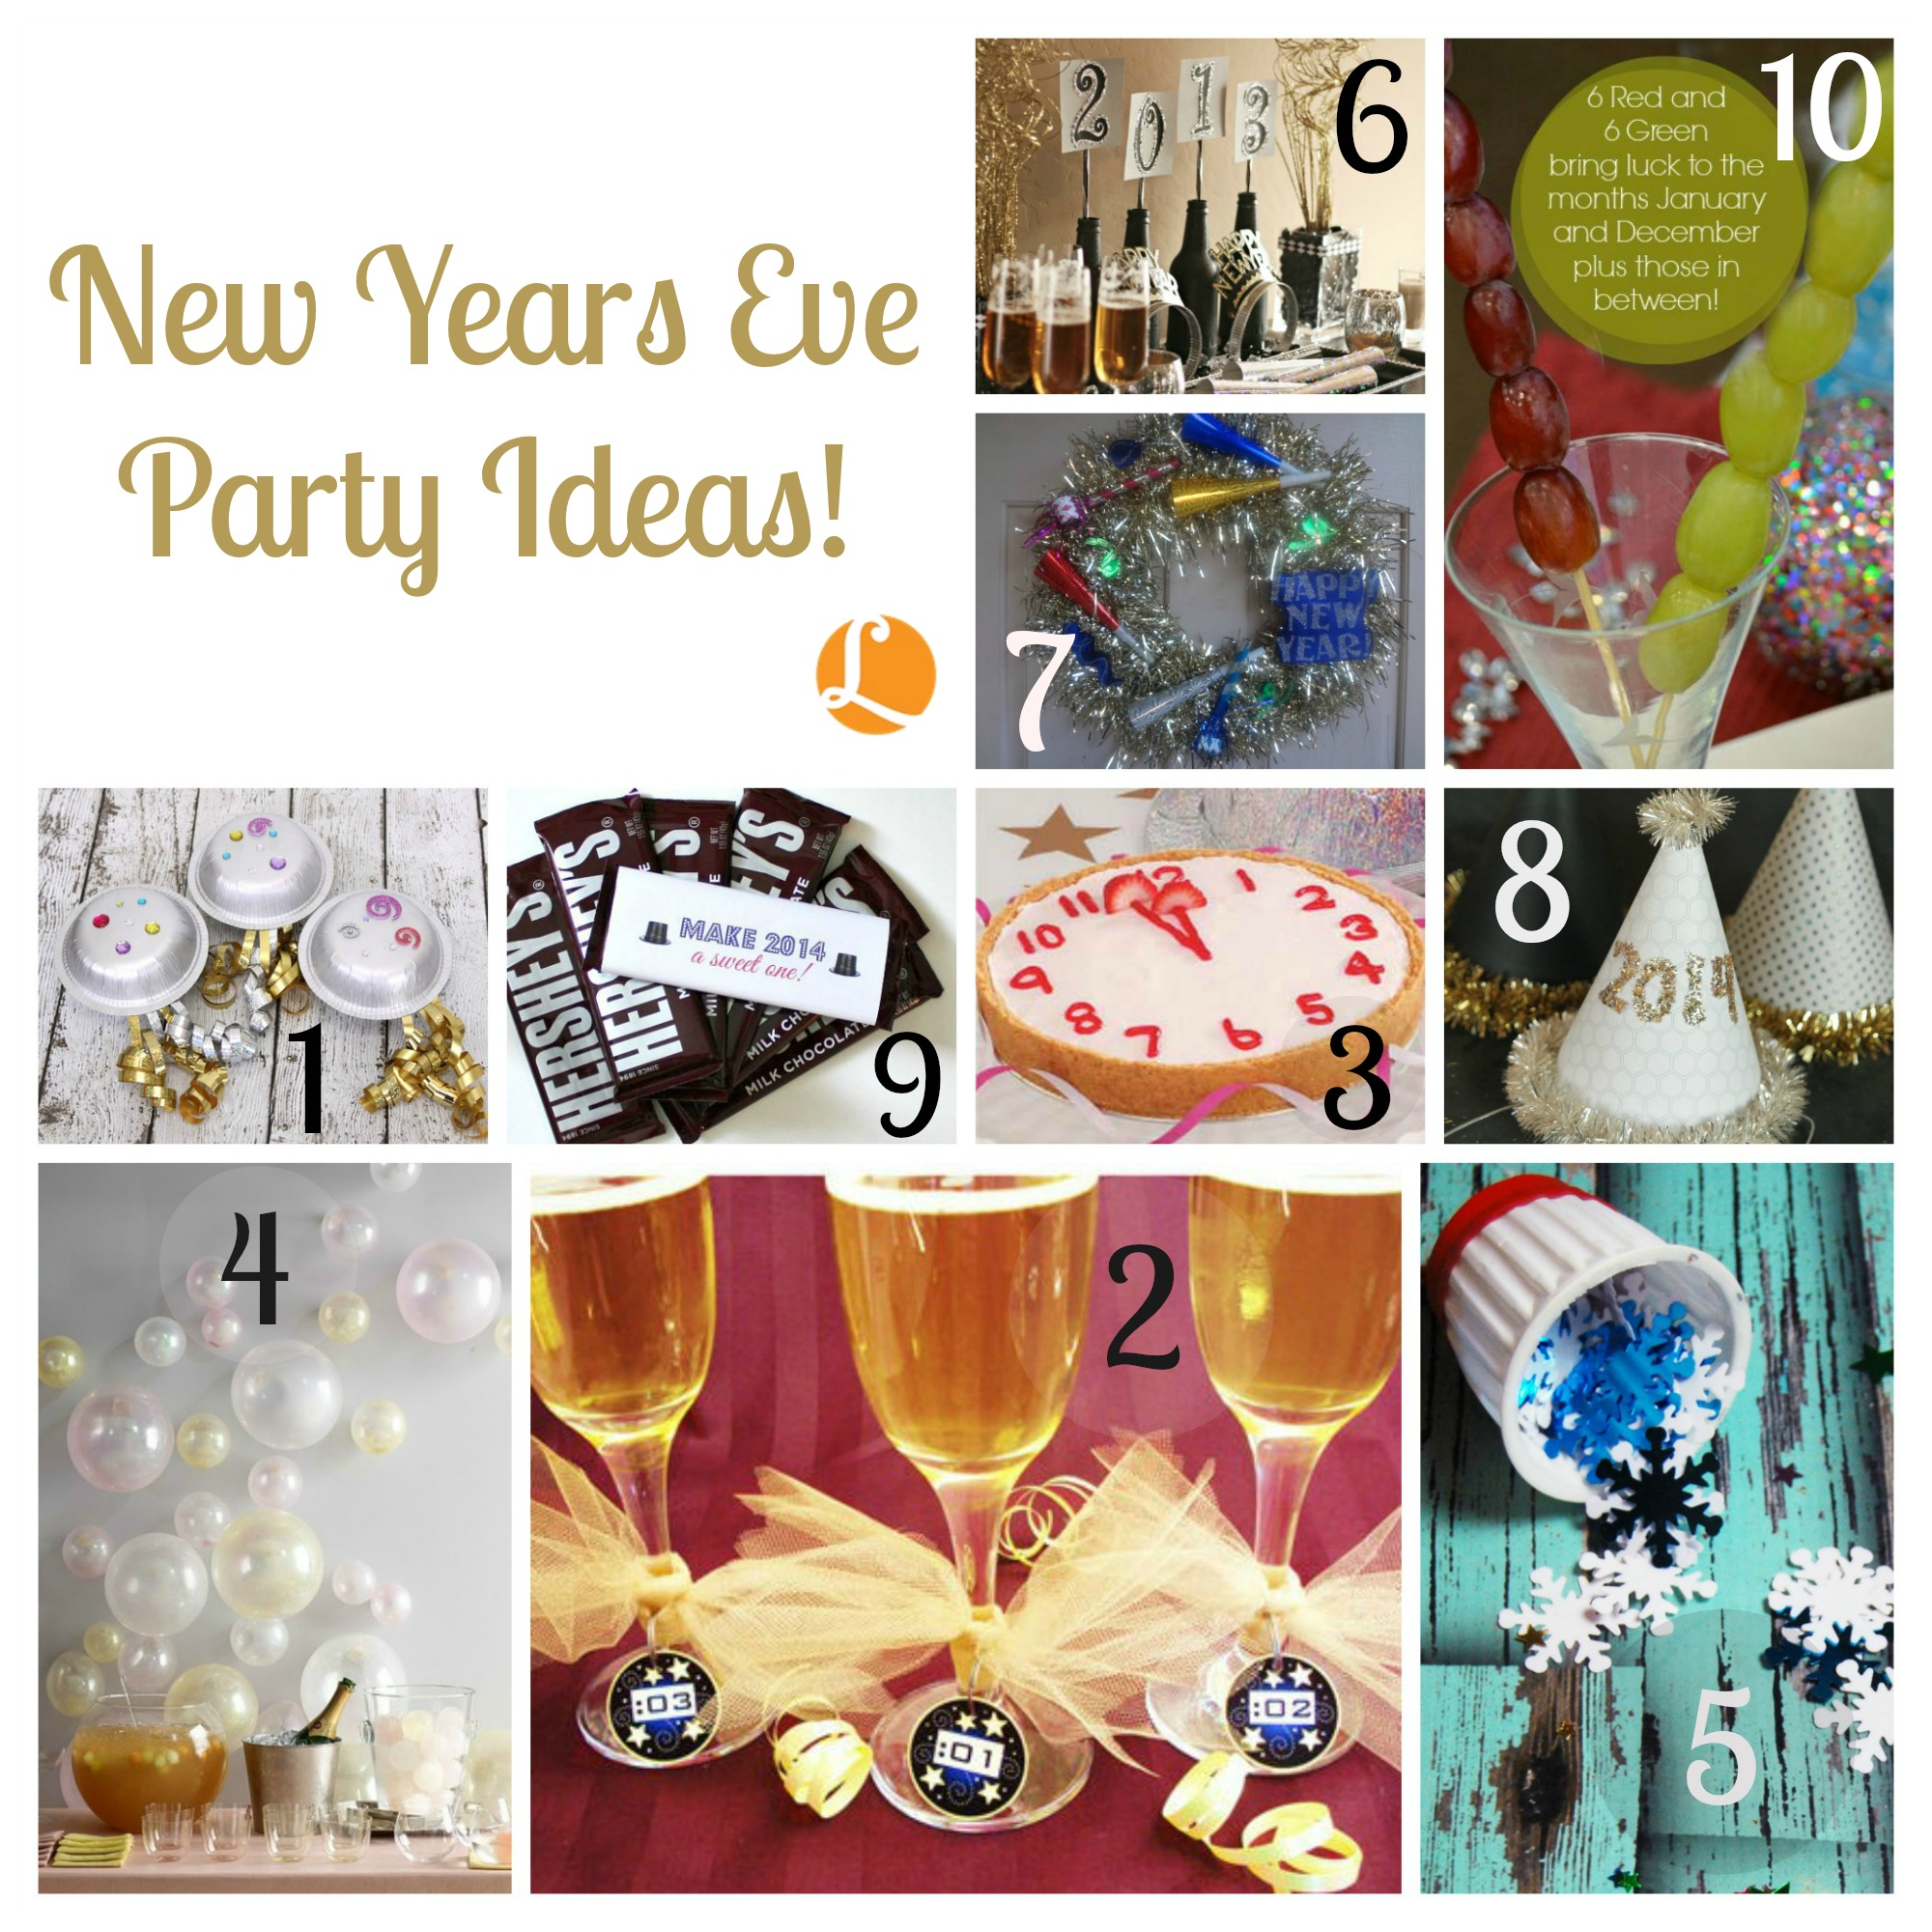 Top 10 new years eve party ideas living rich with for Fun new years eve party ideas